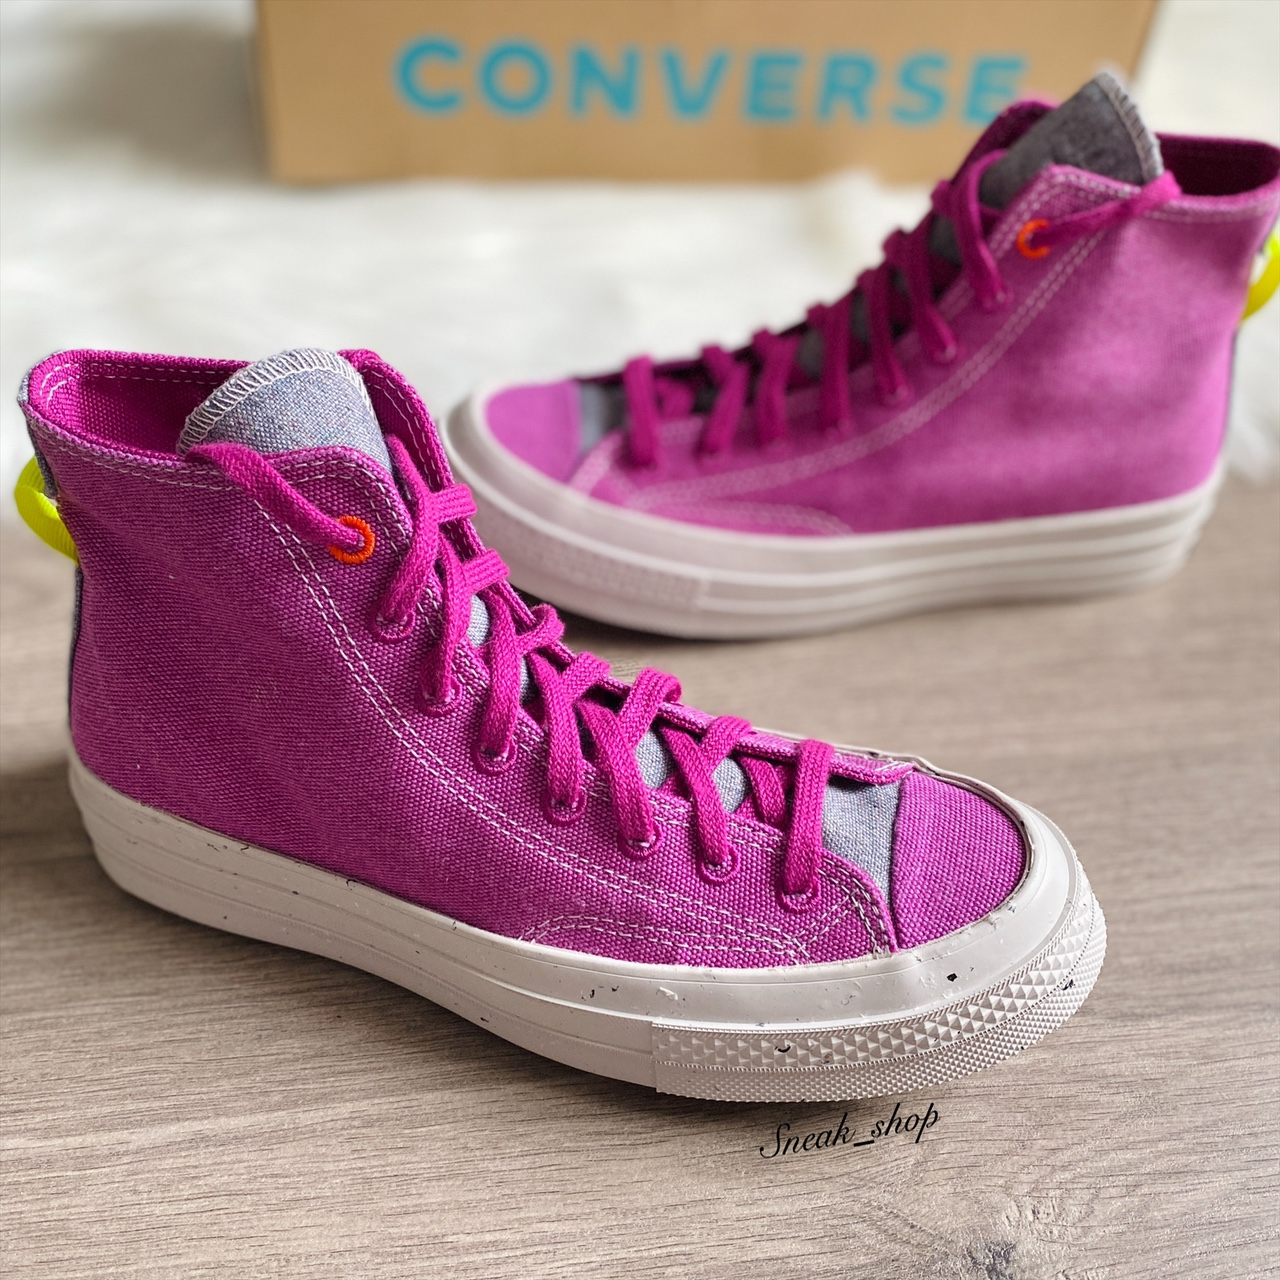 Product Image 1 - NWT Converse Chuck 70 High